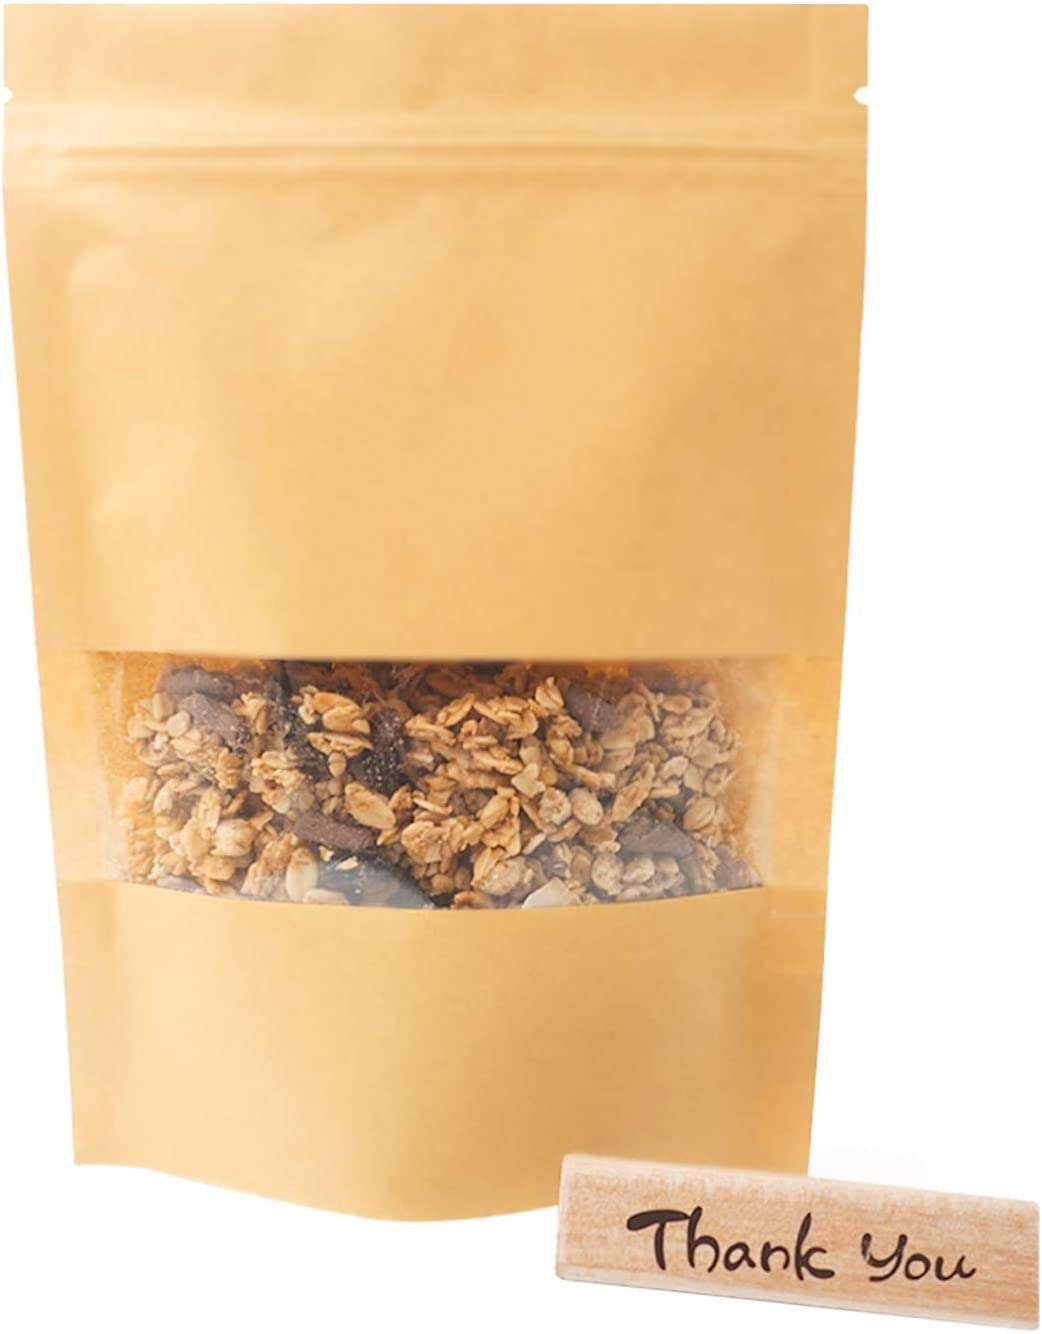 Stand Up Pouches with Window - Food PackagingKraftPaperBags with Resealable Ziplock 50 Pcs 5.5 x 8.6in (14 x 22cm) use for herb, coffee beans, nuts, snacks, Thank You Wooden Stamp included